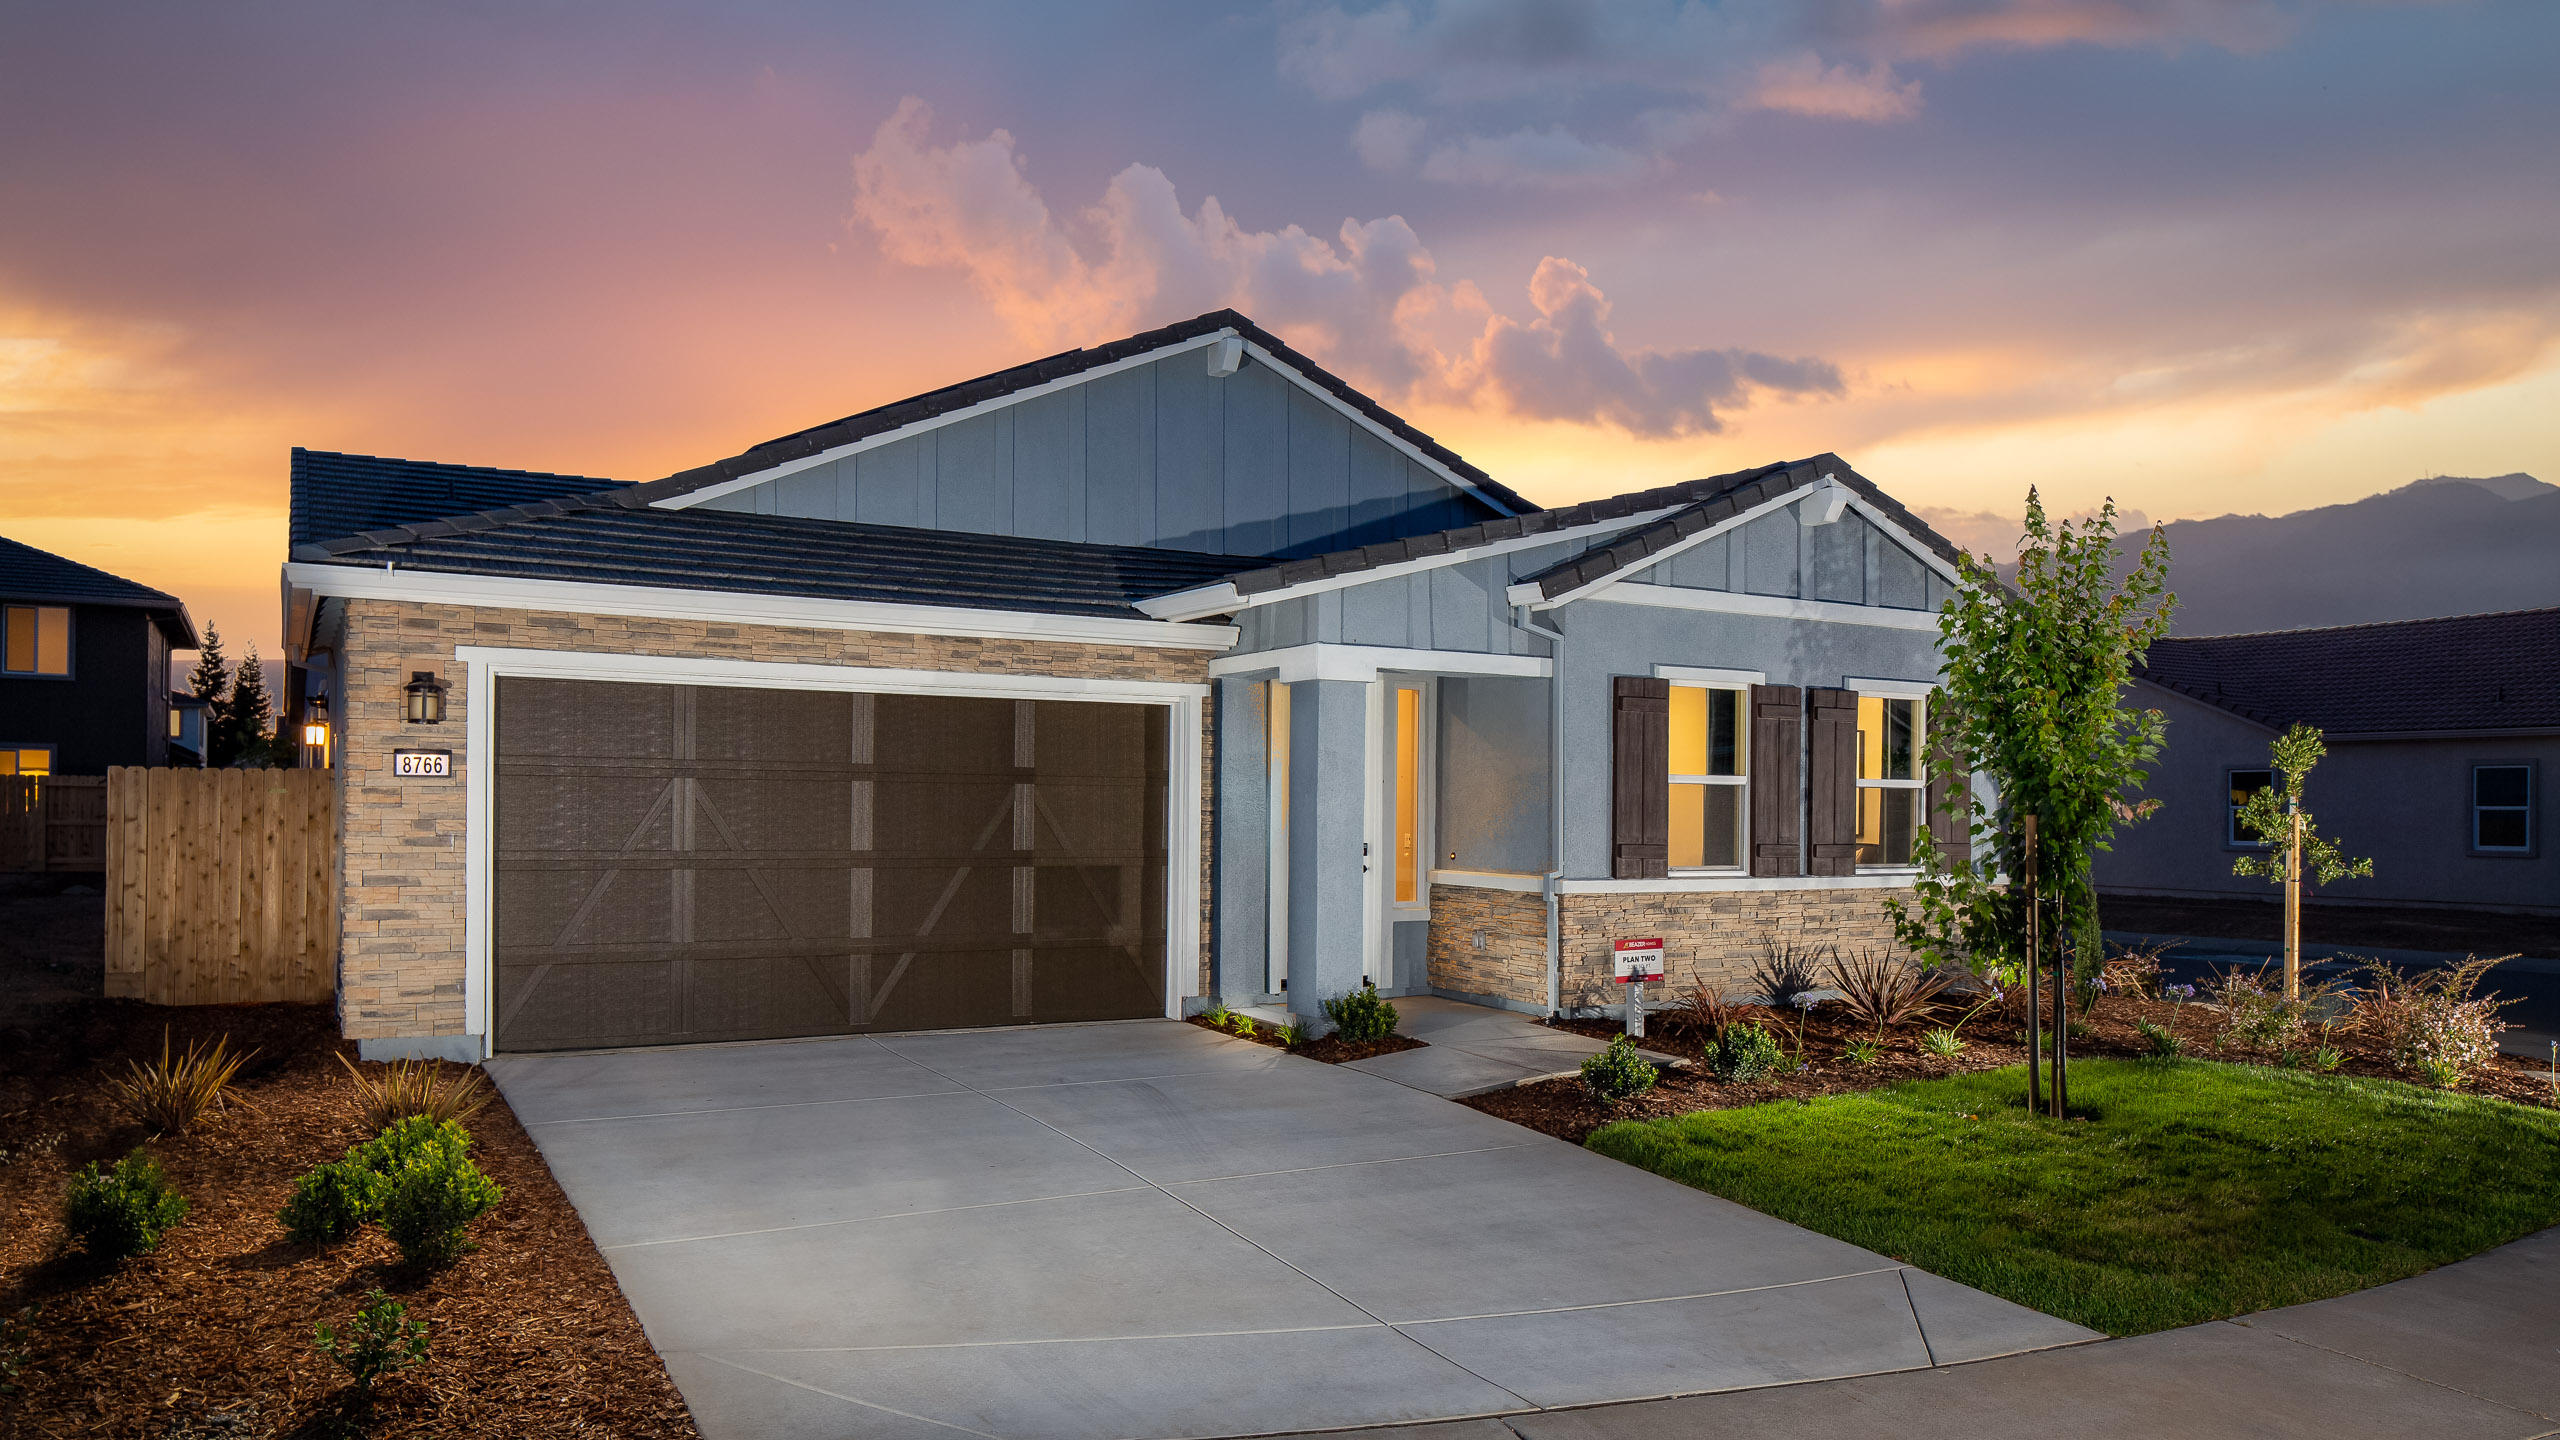 Beazer Homes Avalon Hills image 1